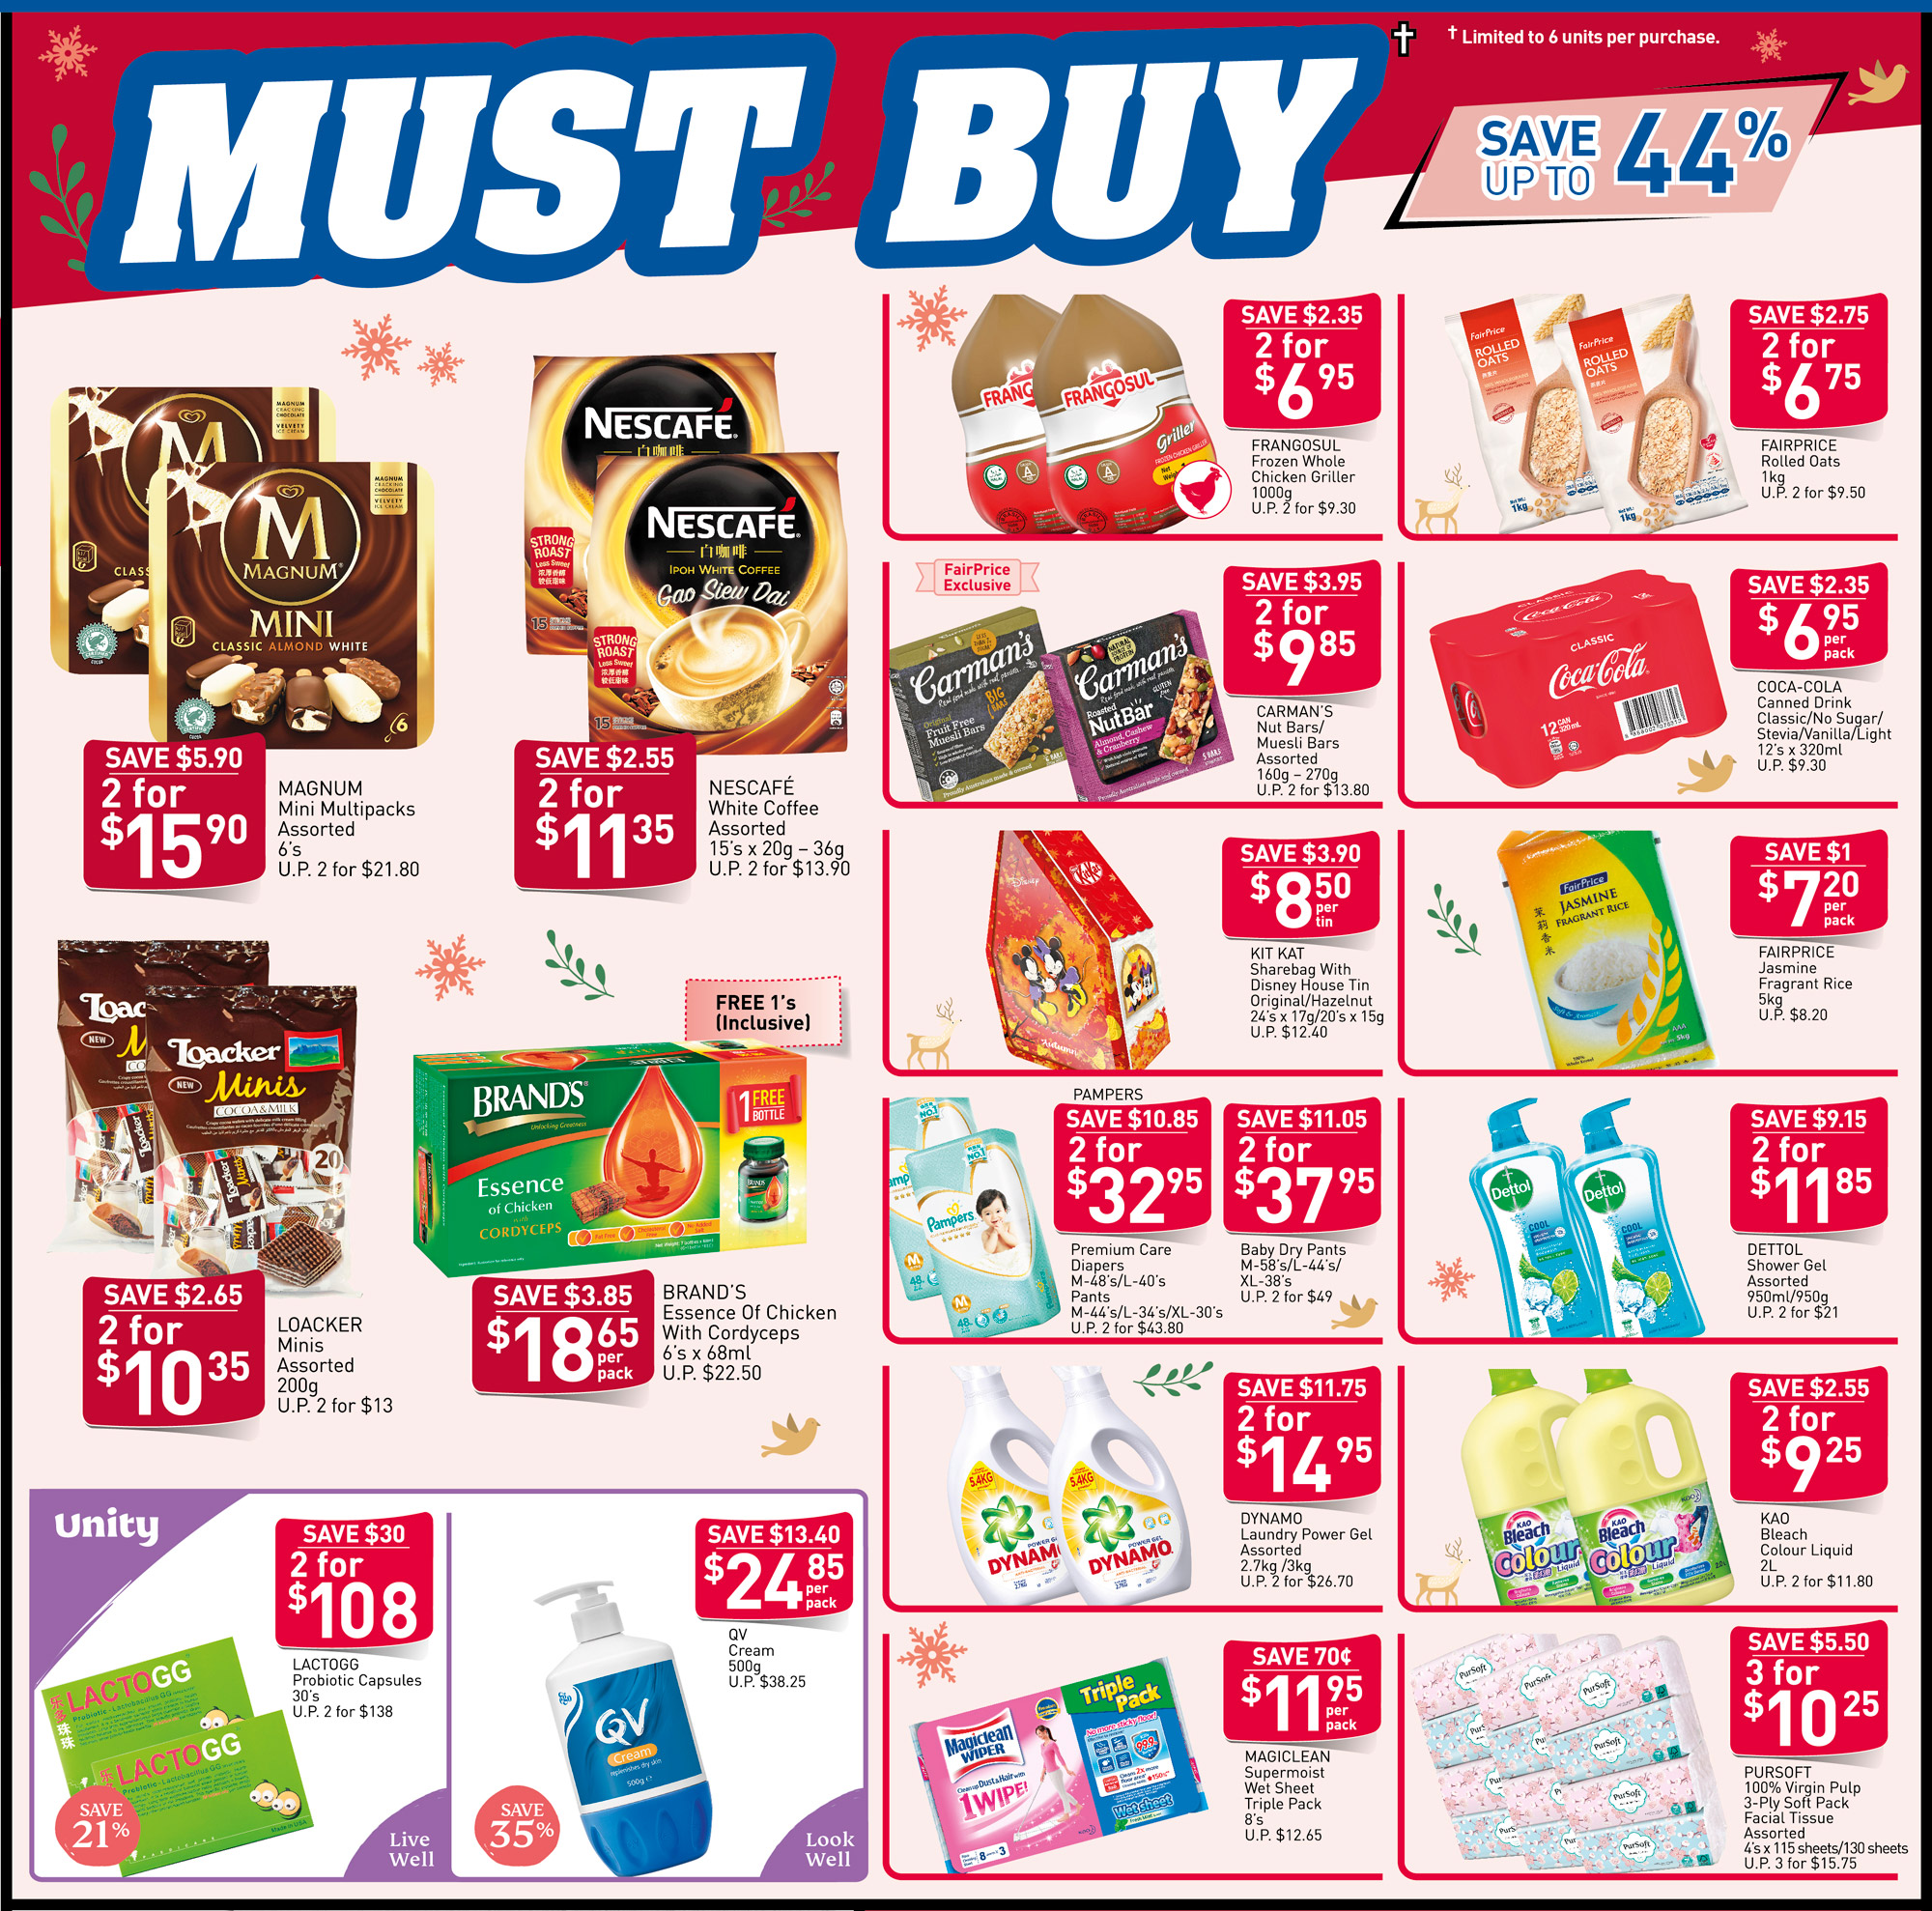 NTUC FairPrice Singapore Your Weekly Saver Promotions 28 Nov - 4 Dec 2019 | Why Not Deals 3 & Promotions